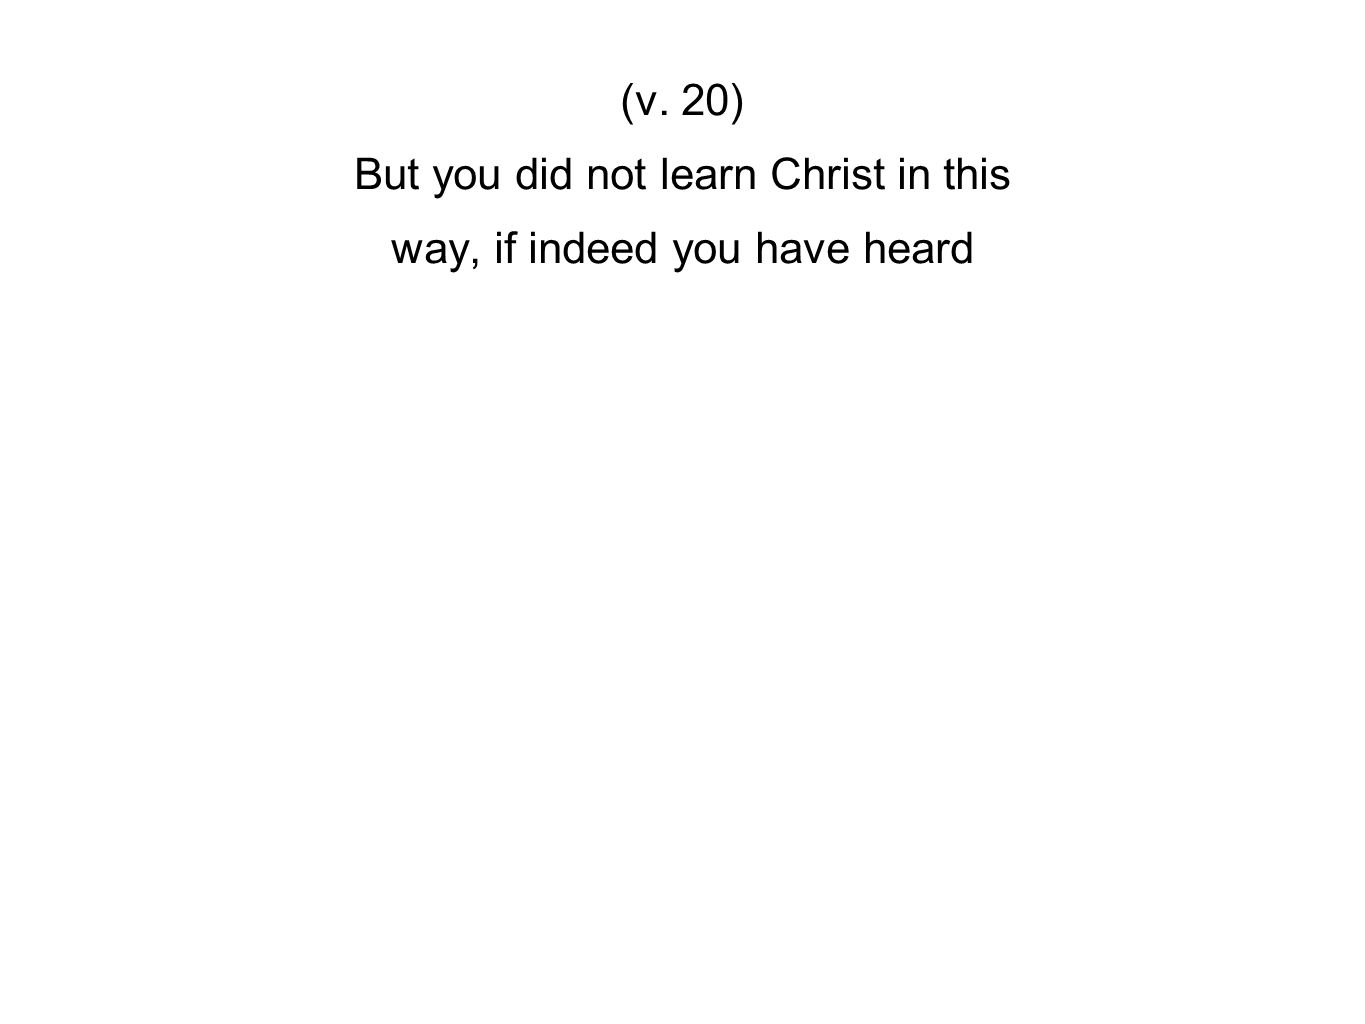 (v. 20) But you did not learn Christ in this way, if indeed you have heard